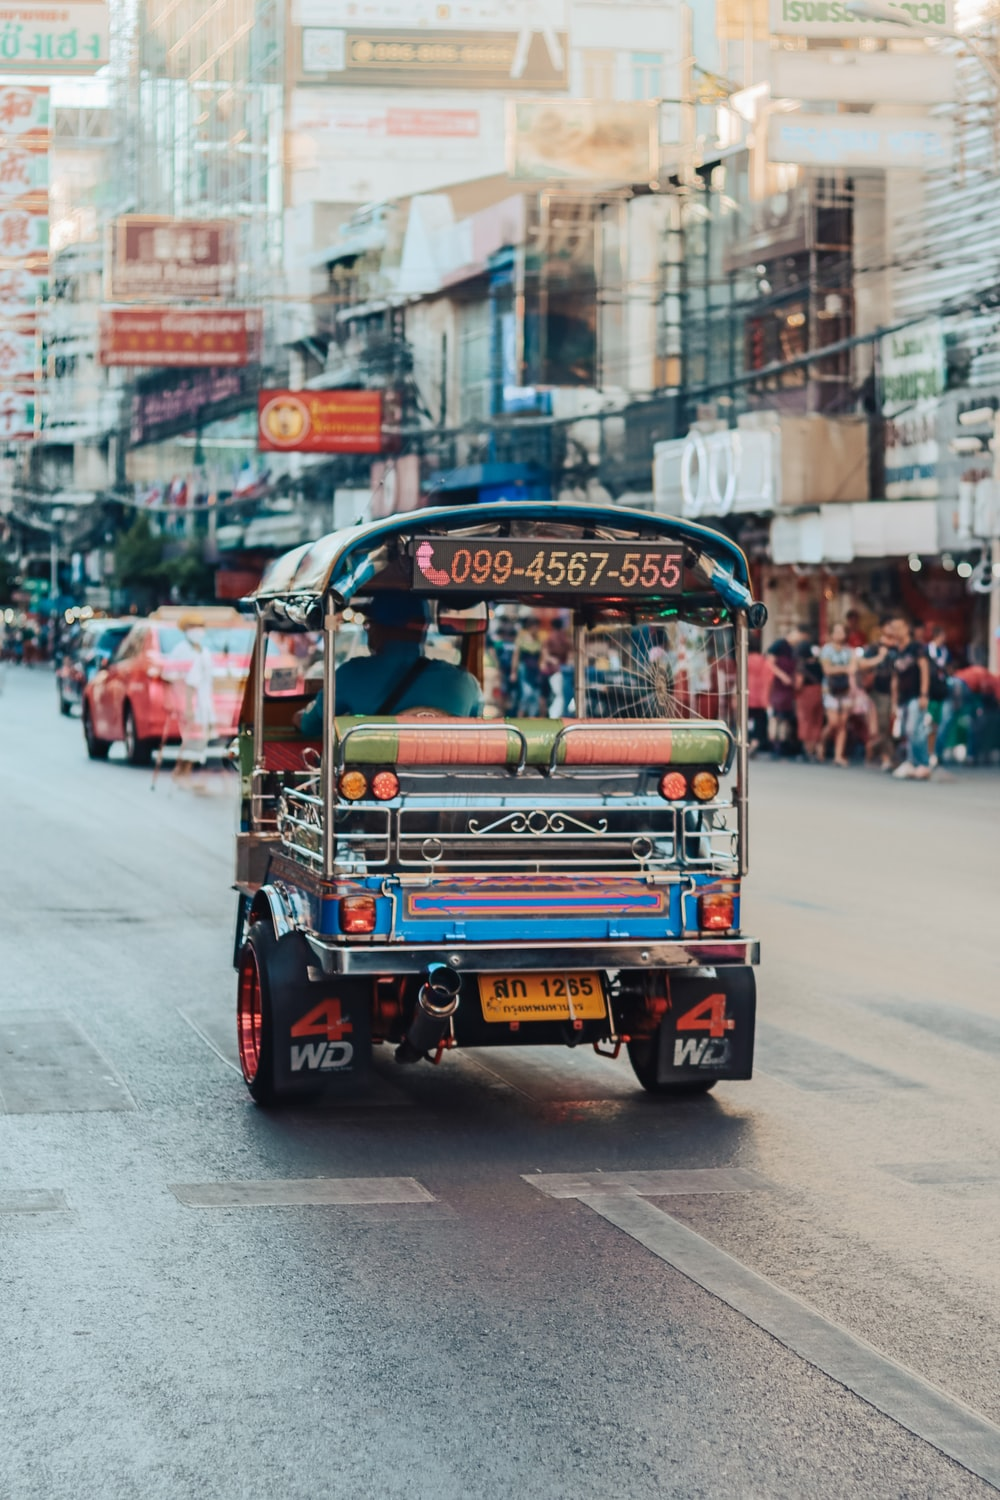 red and blue auto rickshaw on road during daytime